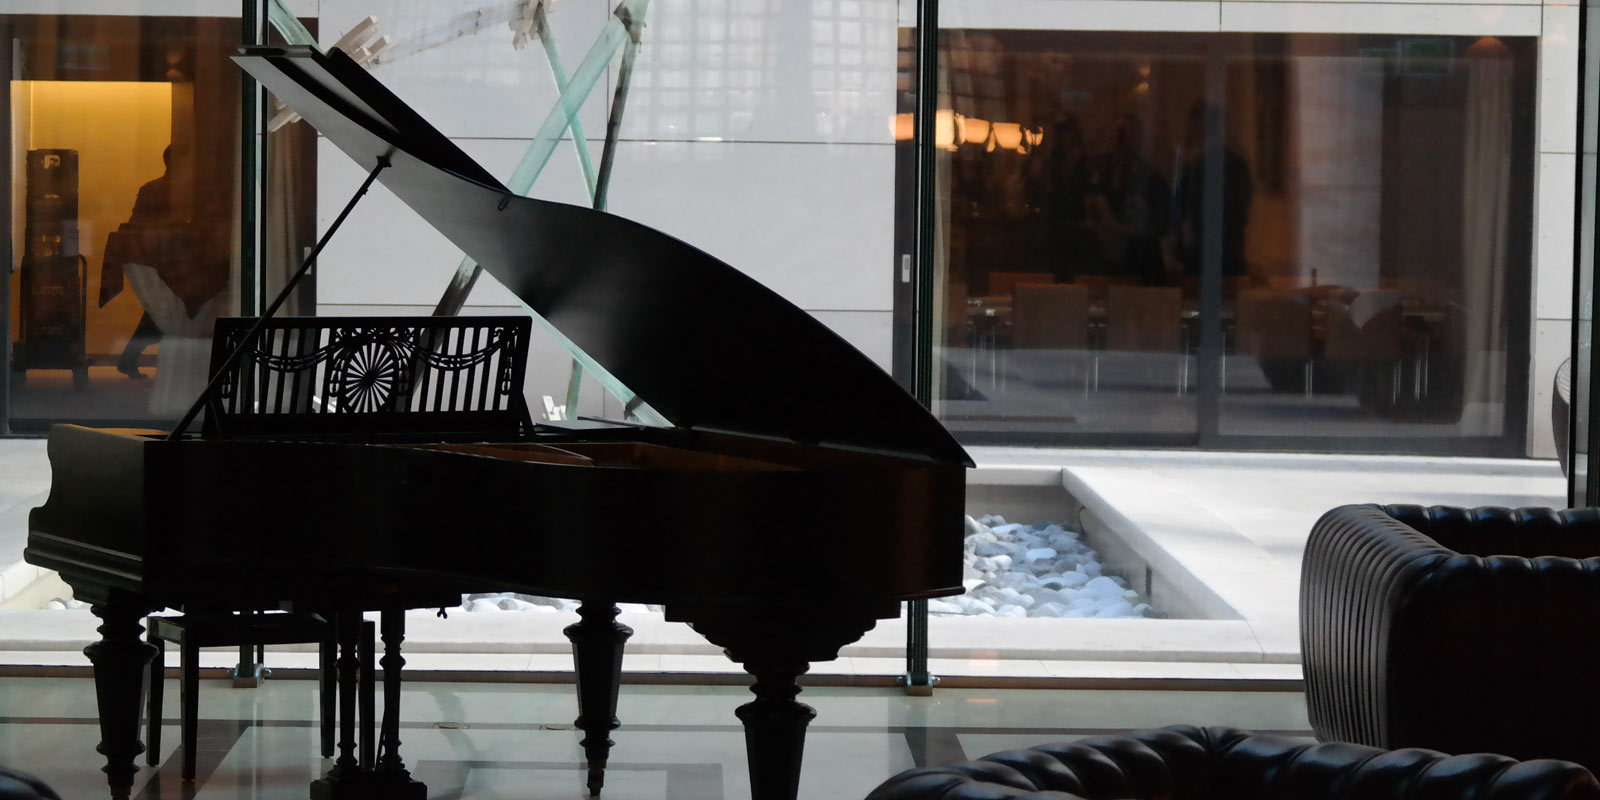 Grand Piano with Building in the Background